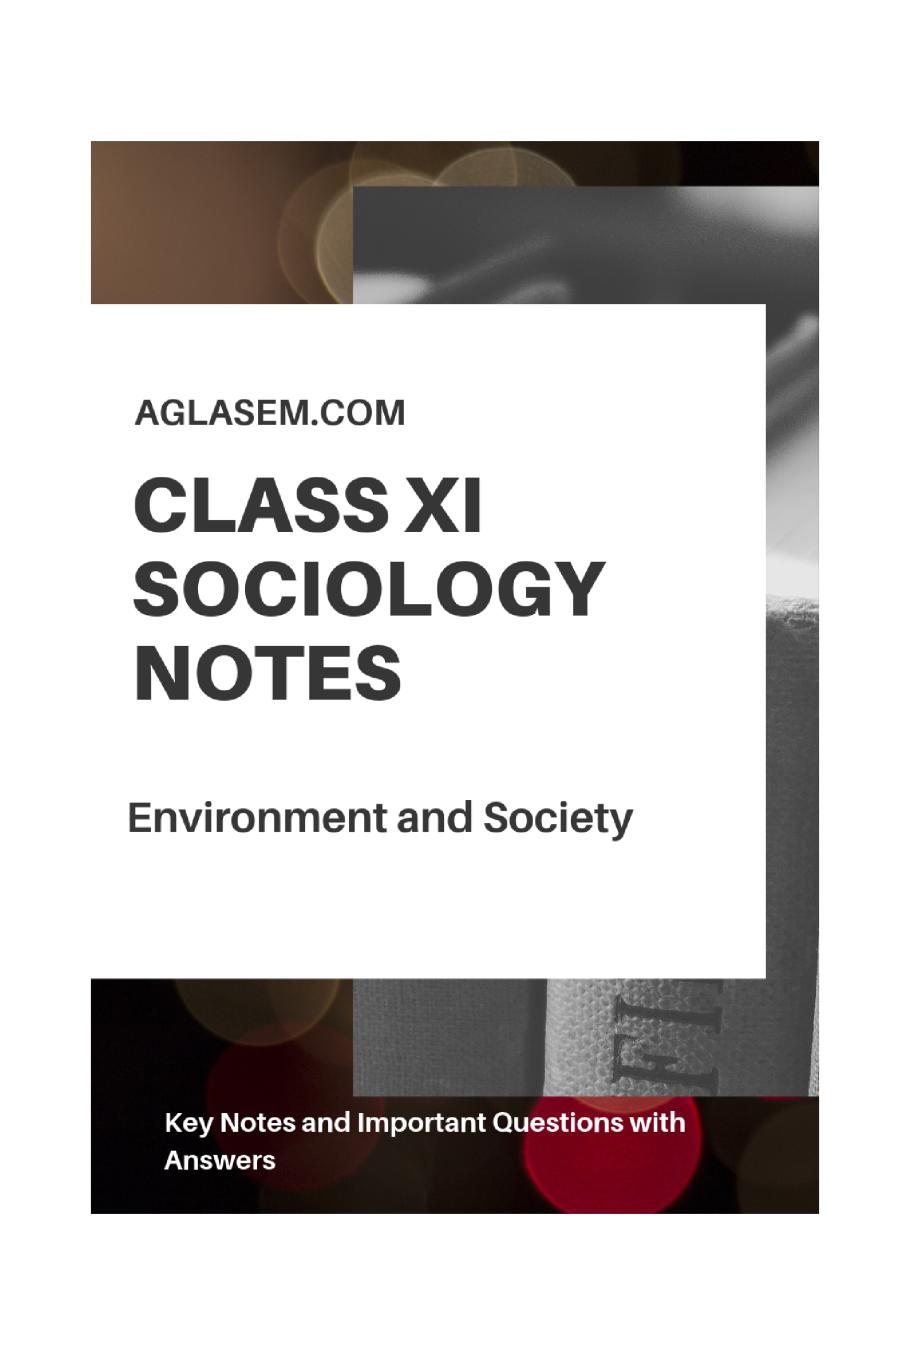 Class 11 Sociology Notes for Environment and Society